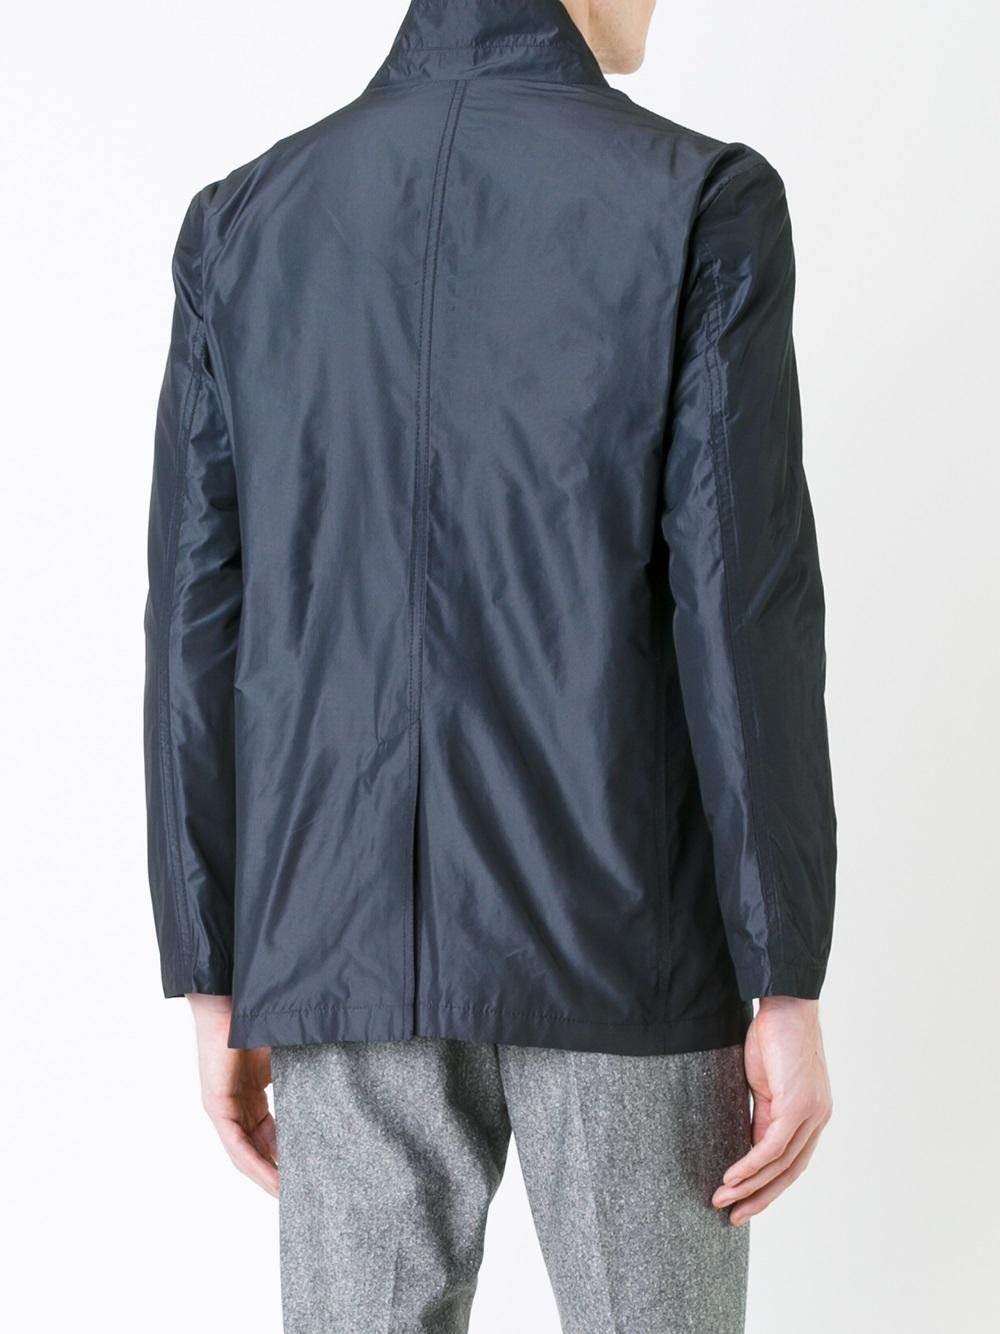 Kent & Curwen Synthetic Lightweight Buttoned Jacket in Black for Men